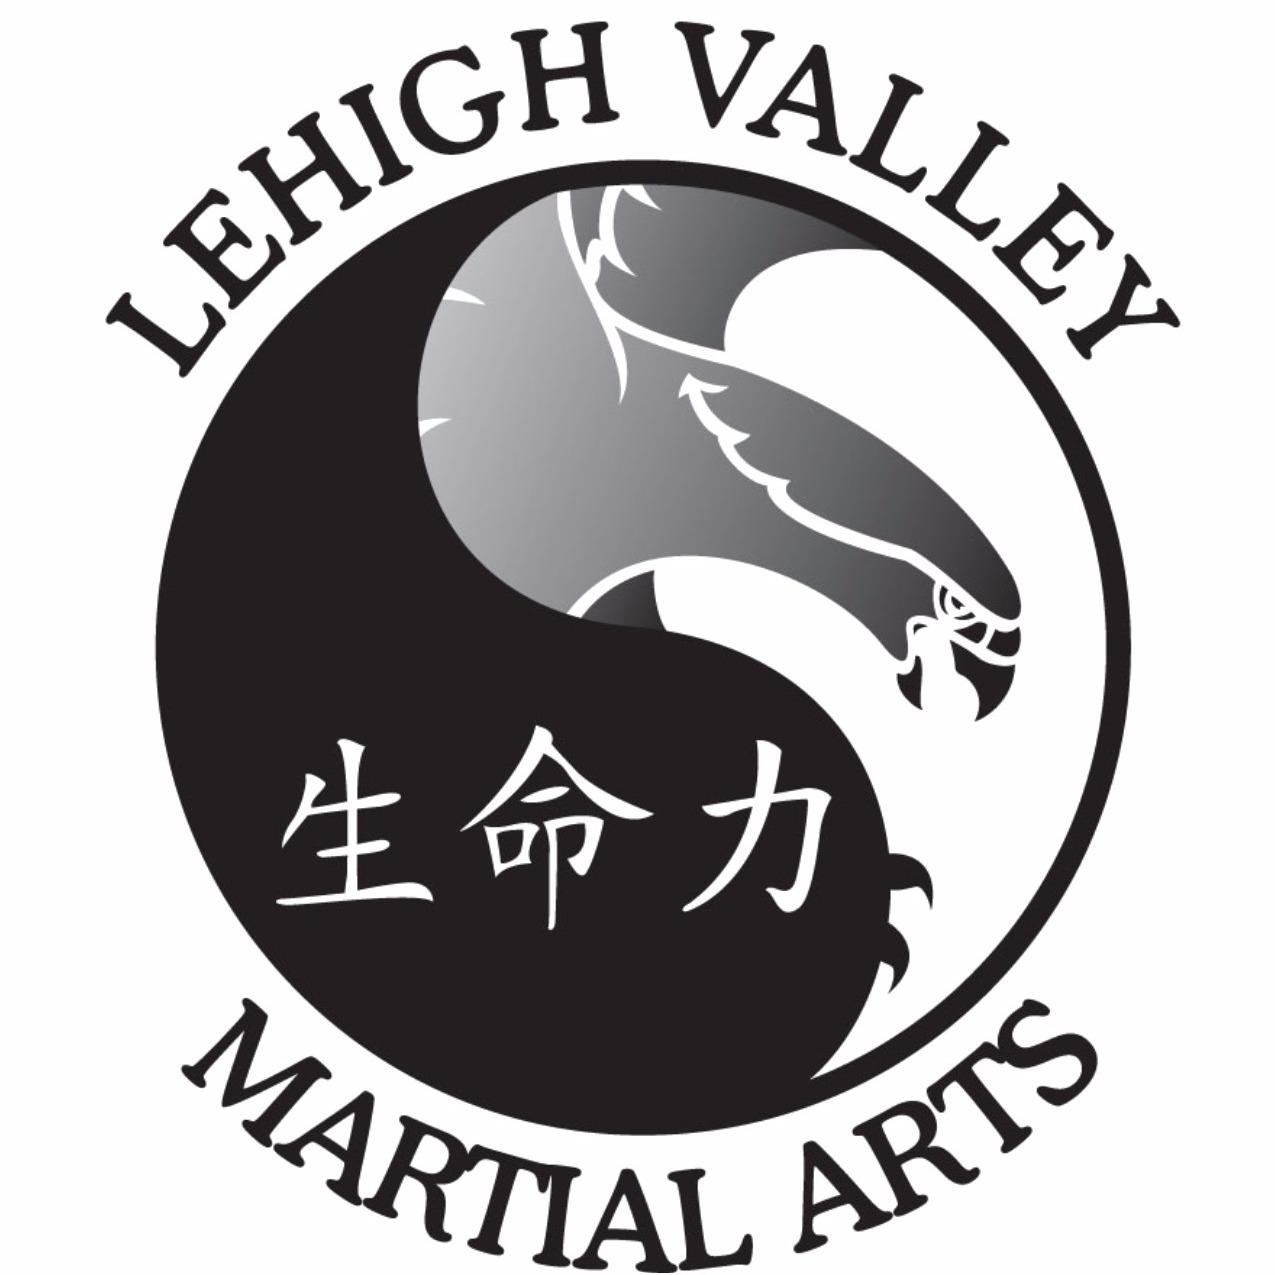 Lehigh Valley Martial Arts - Fogelsville